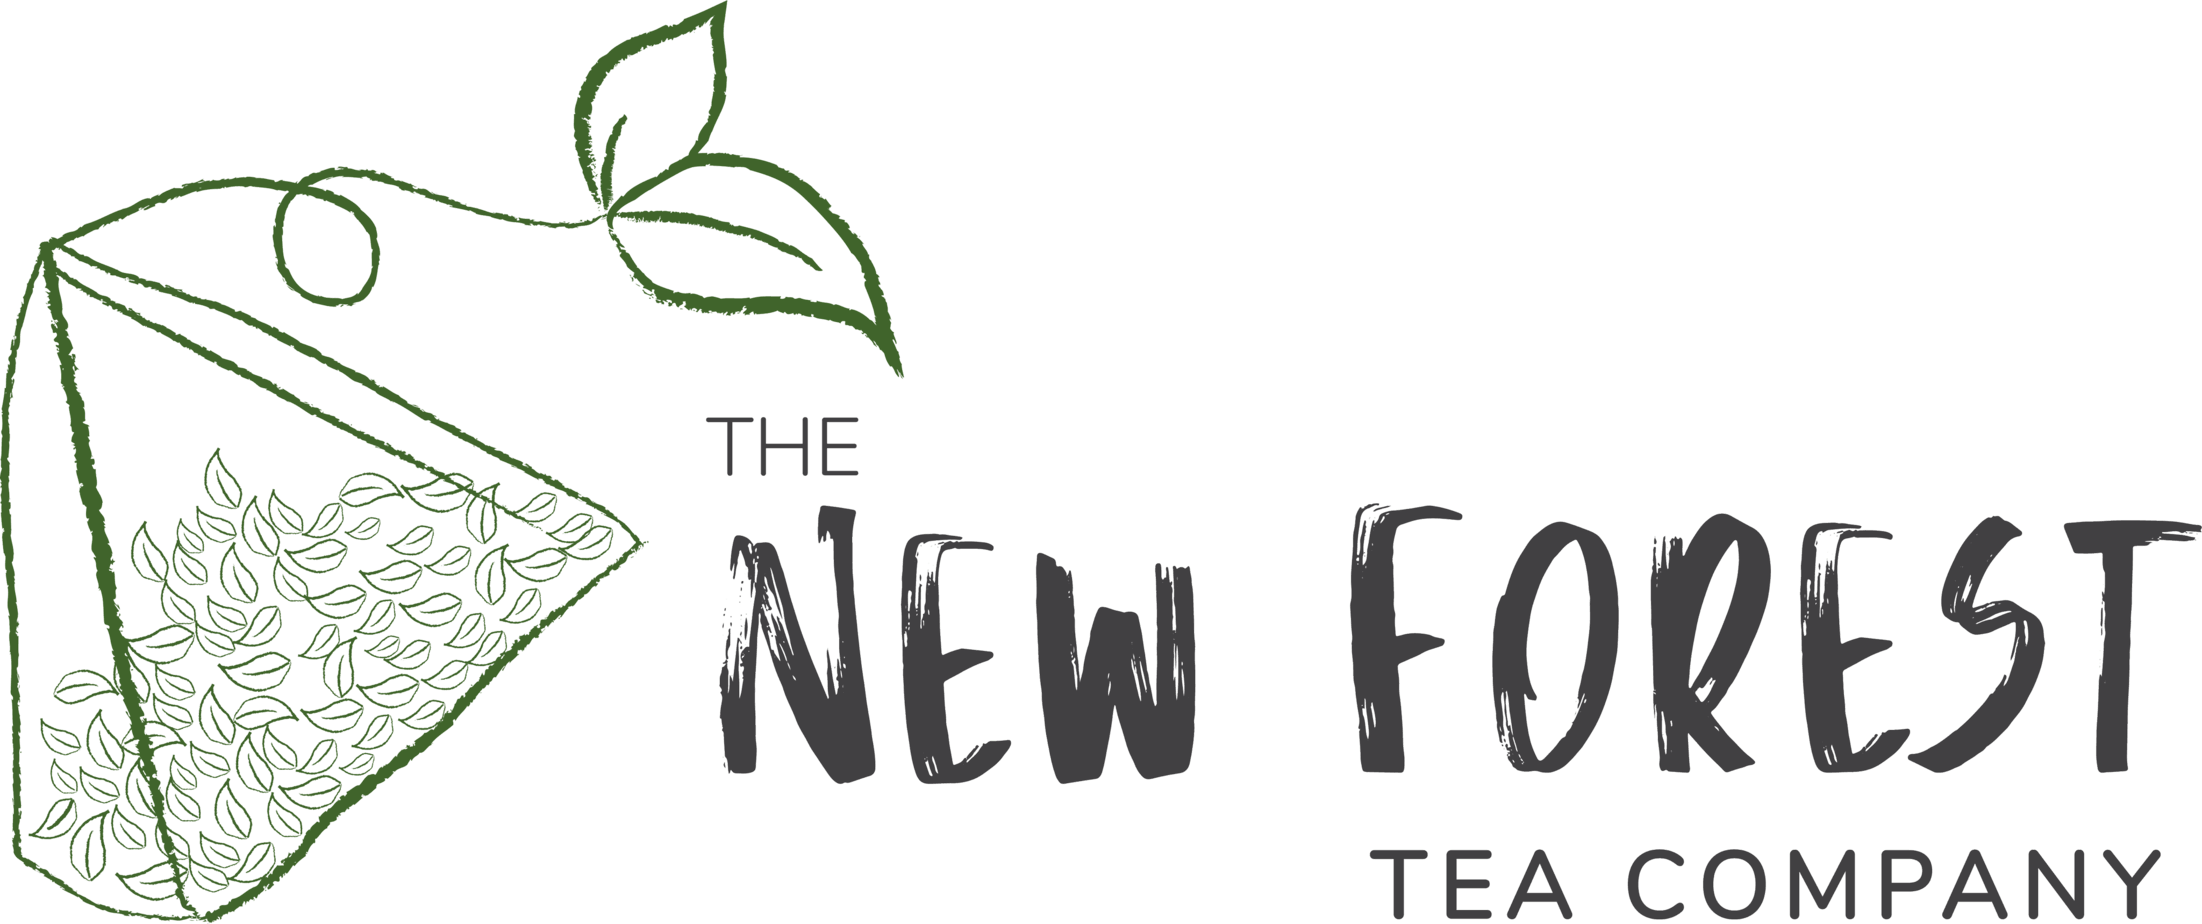 New Forest tea company